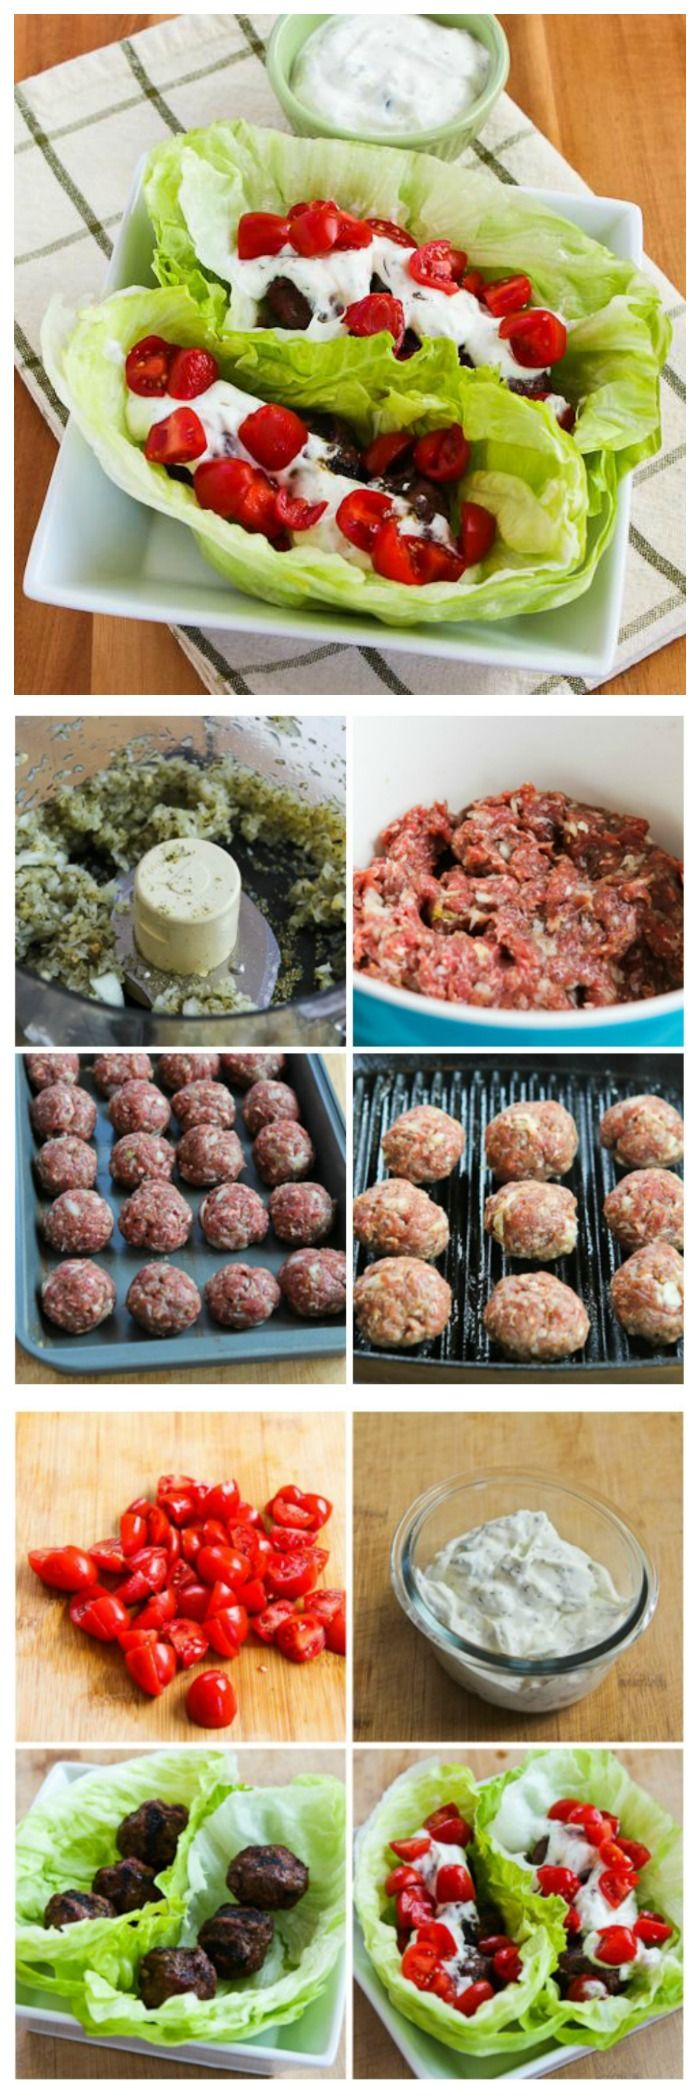 Gyro Meatball Lettuce Wraps have all the delicious flavors that makes Gyros so good, but none of the carbs!  This is a perfect meal to jump-start a lower-carb eating plan.  [from KalynsKitchen.com] #LowCarb #GlutenFree